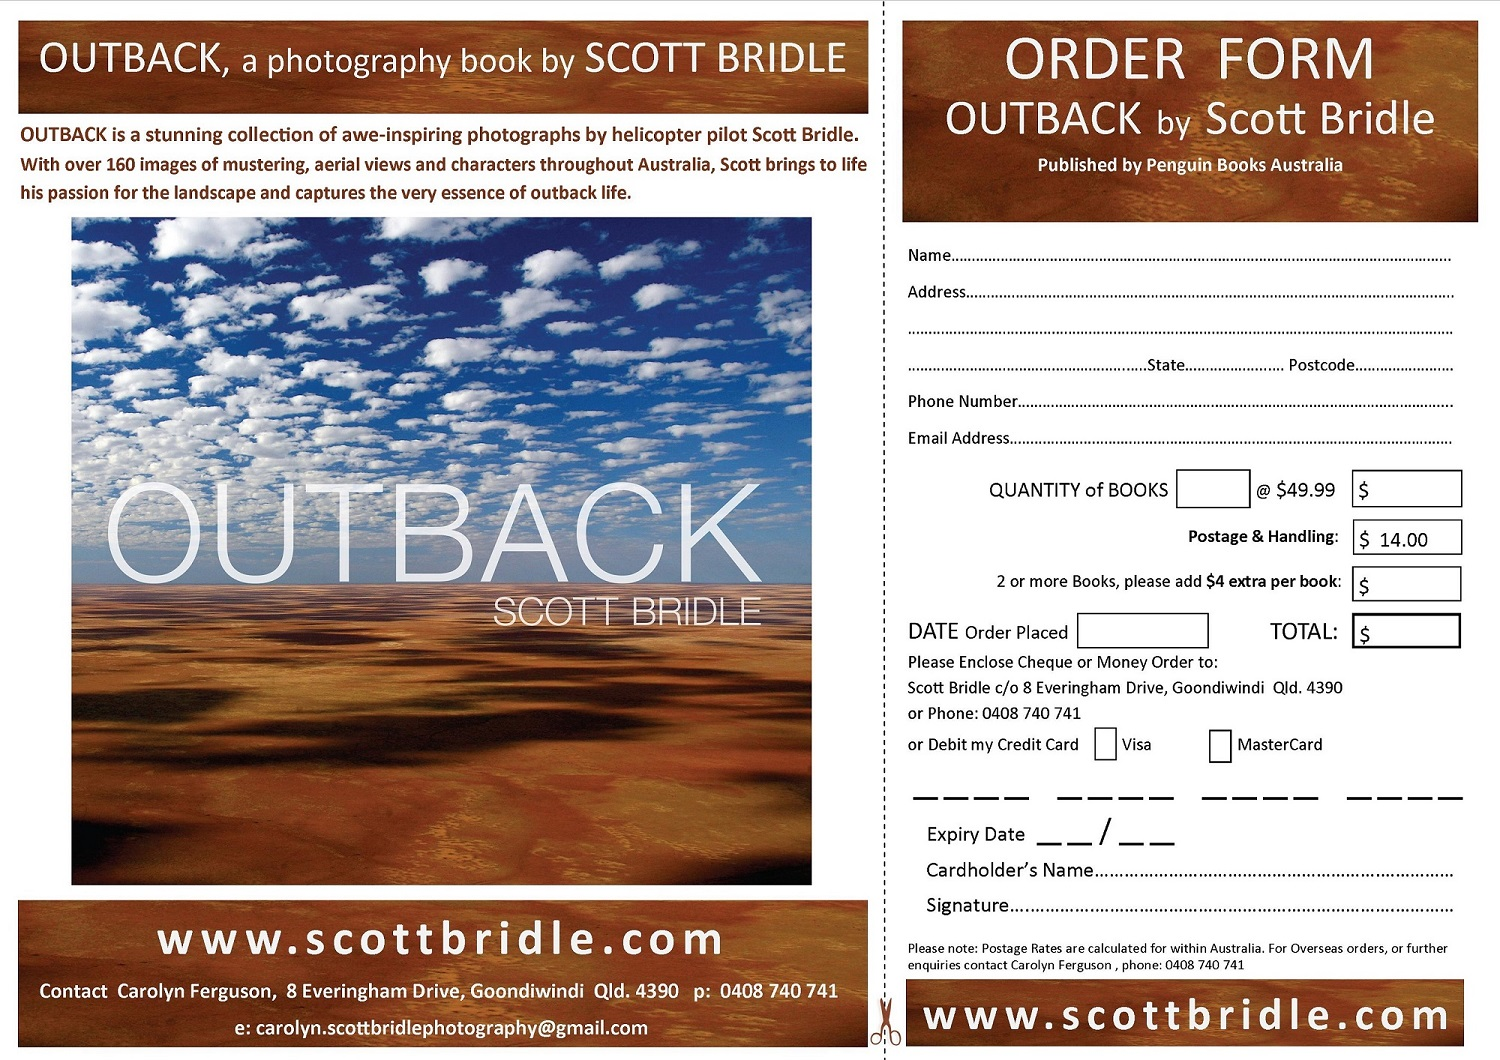 OUTBACK BOOK ORDER FORM